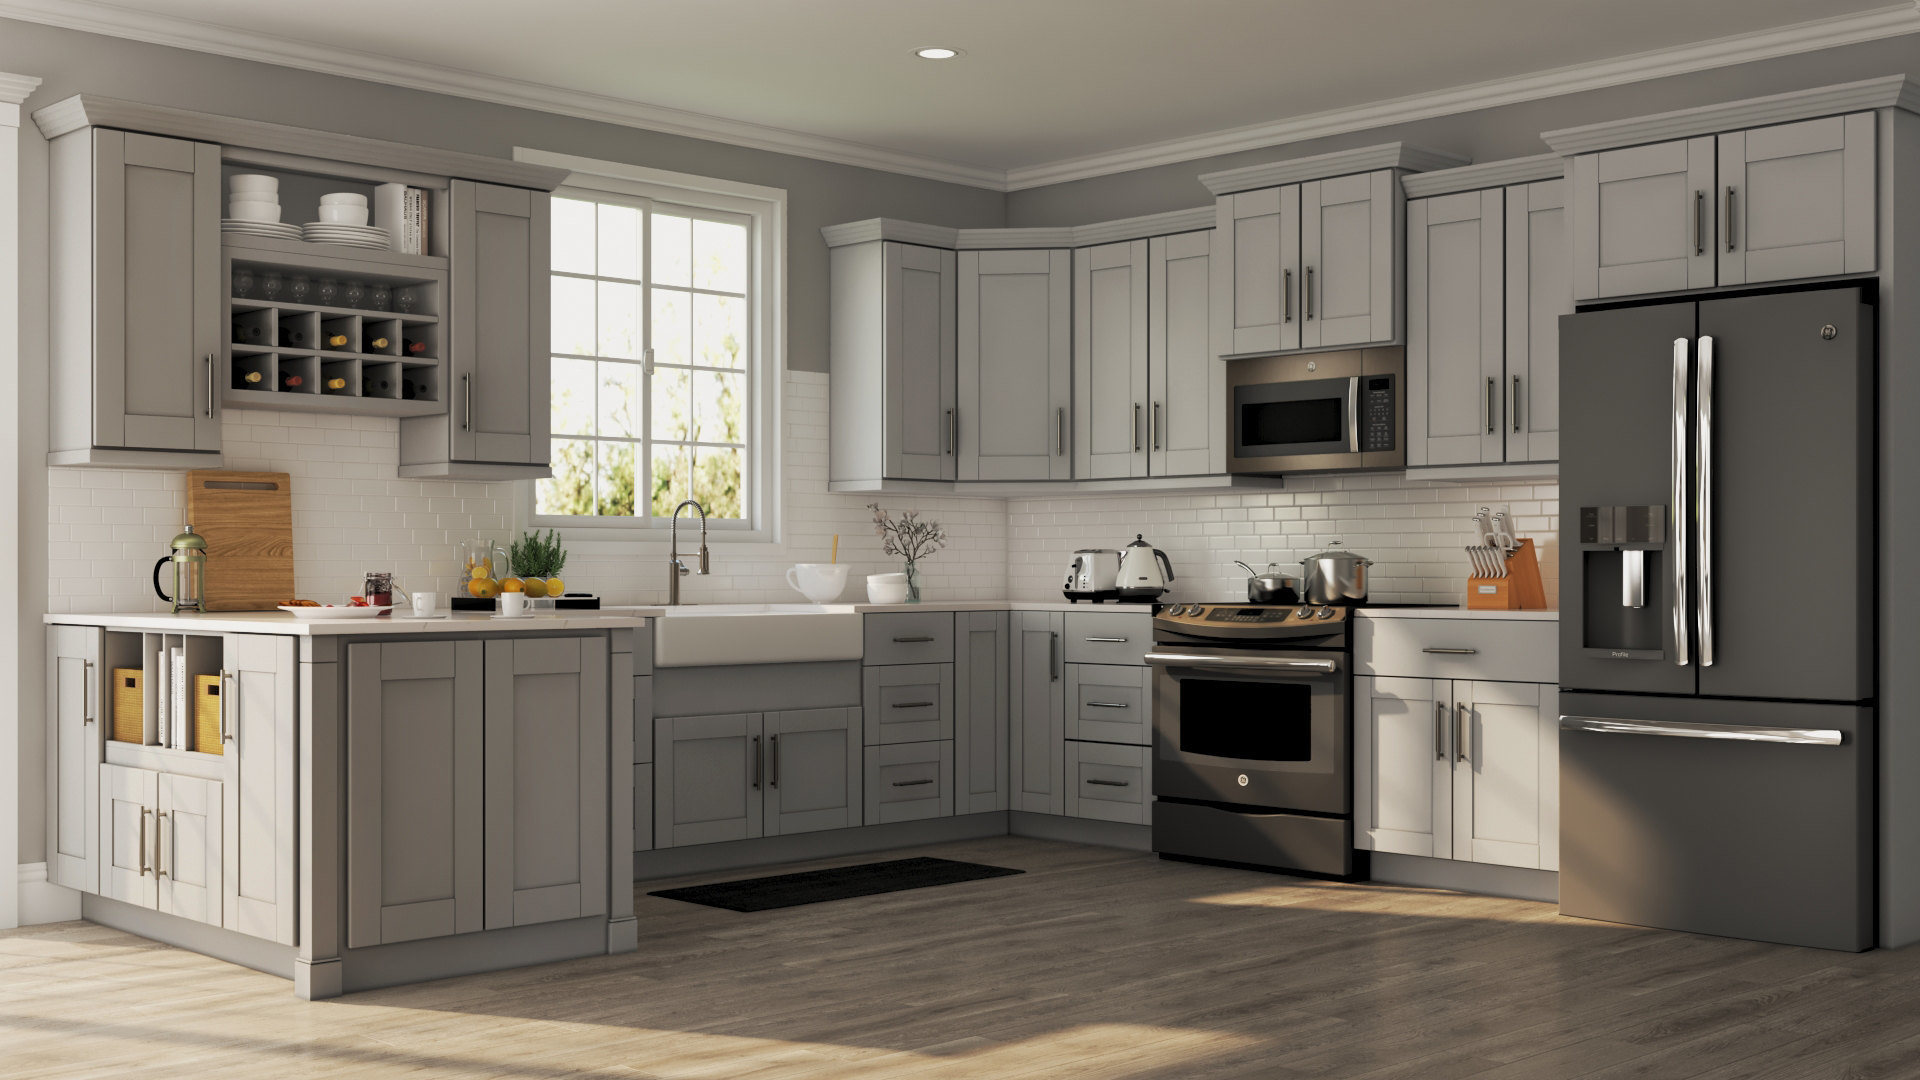 Wall Cabinets Kitchen Sizes